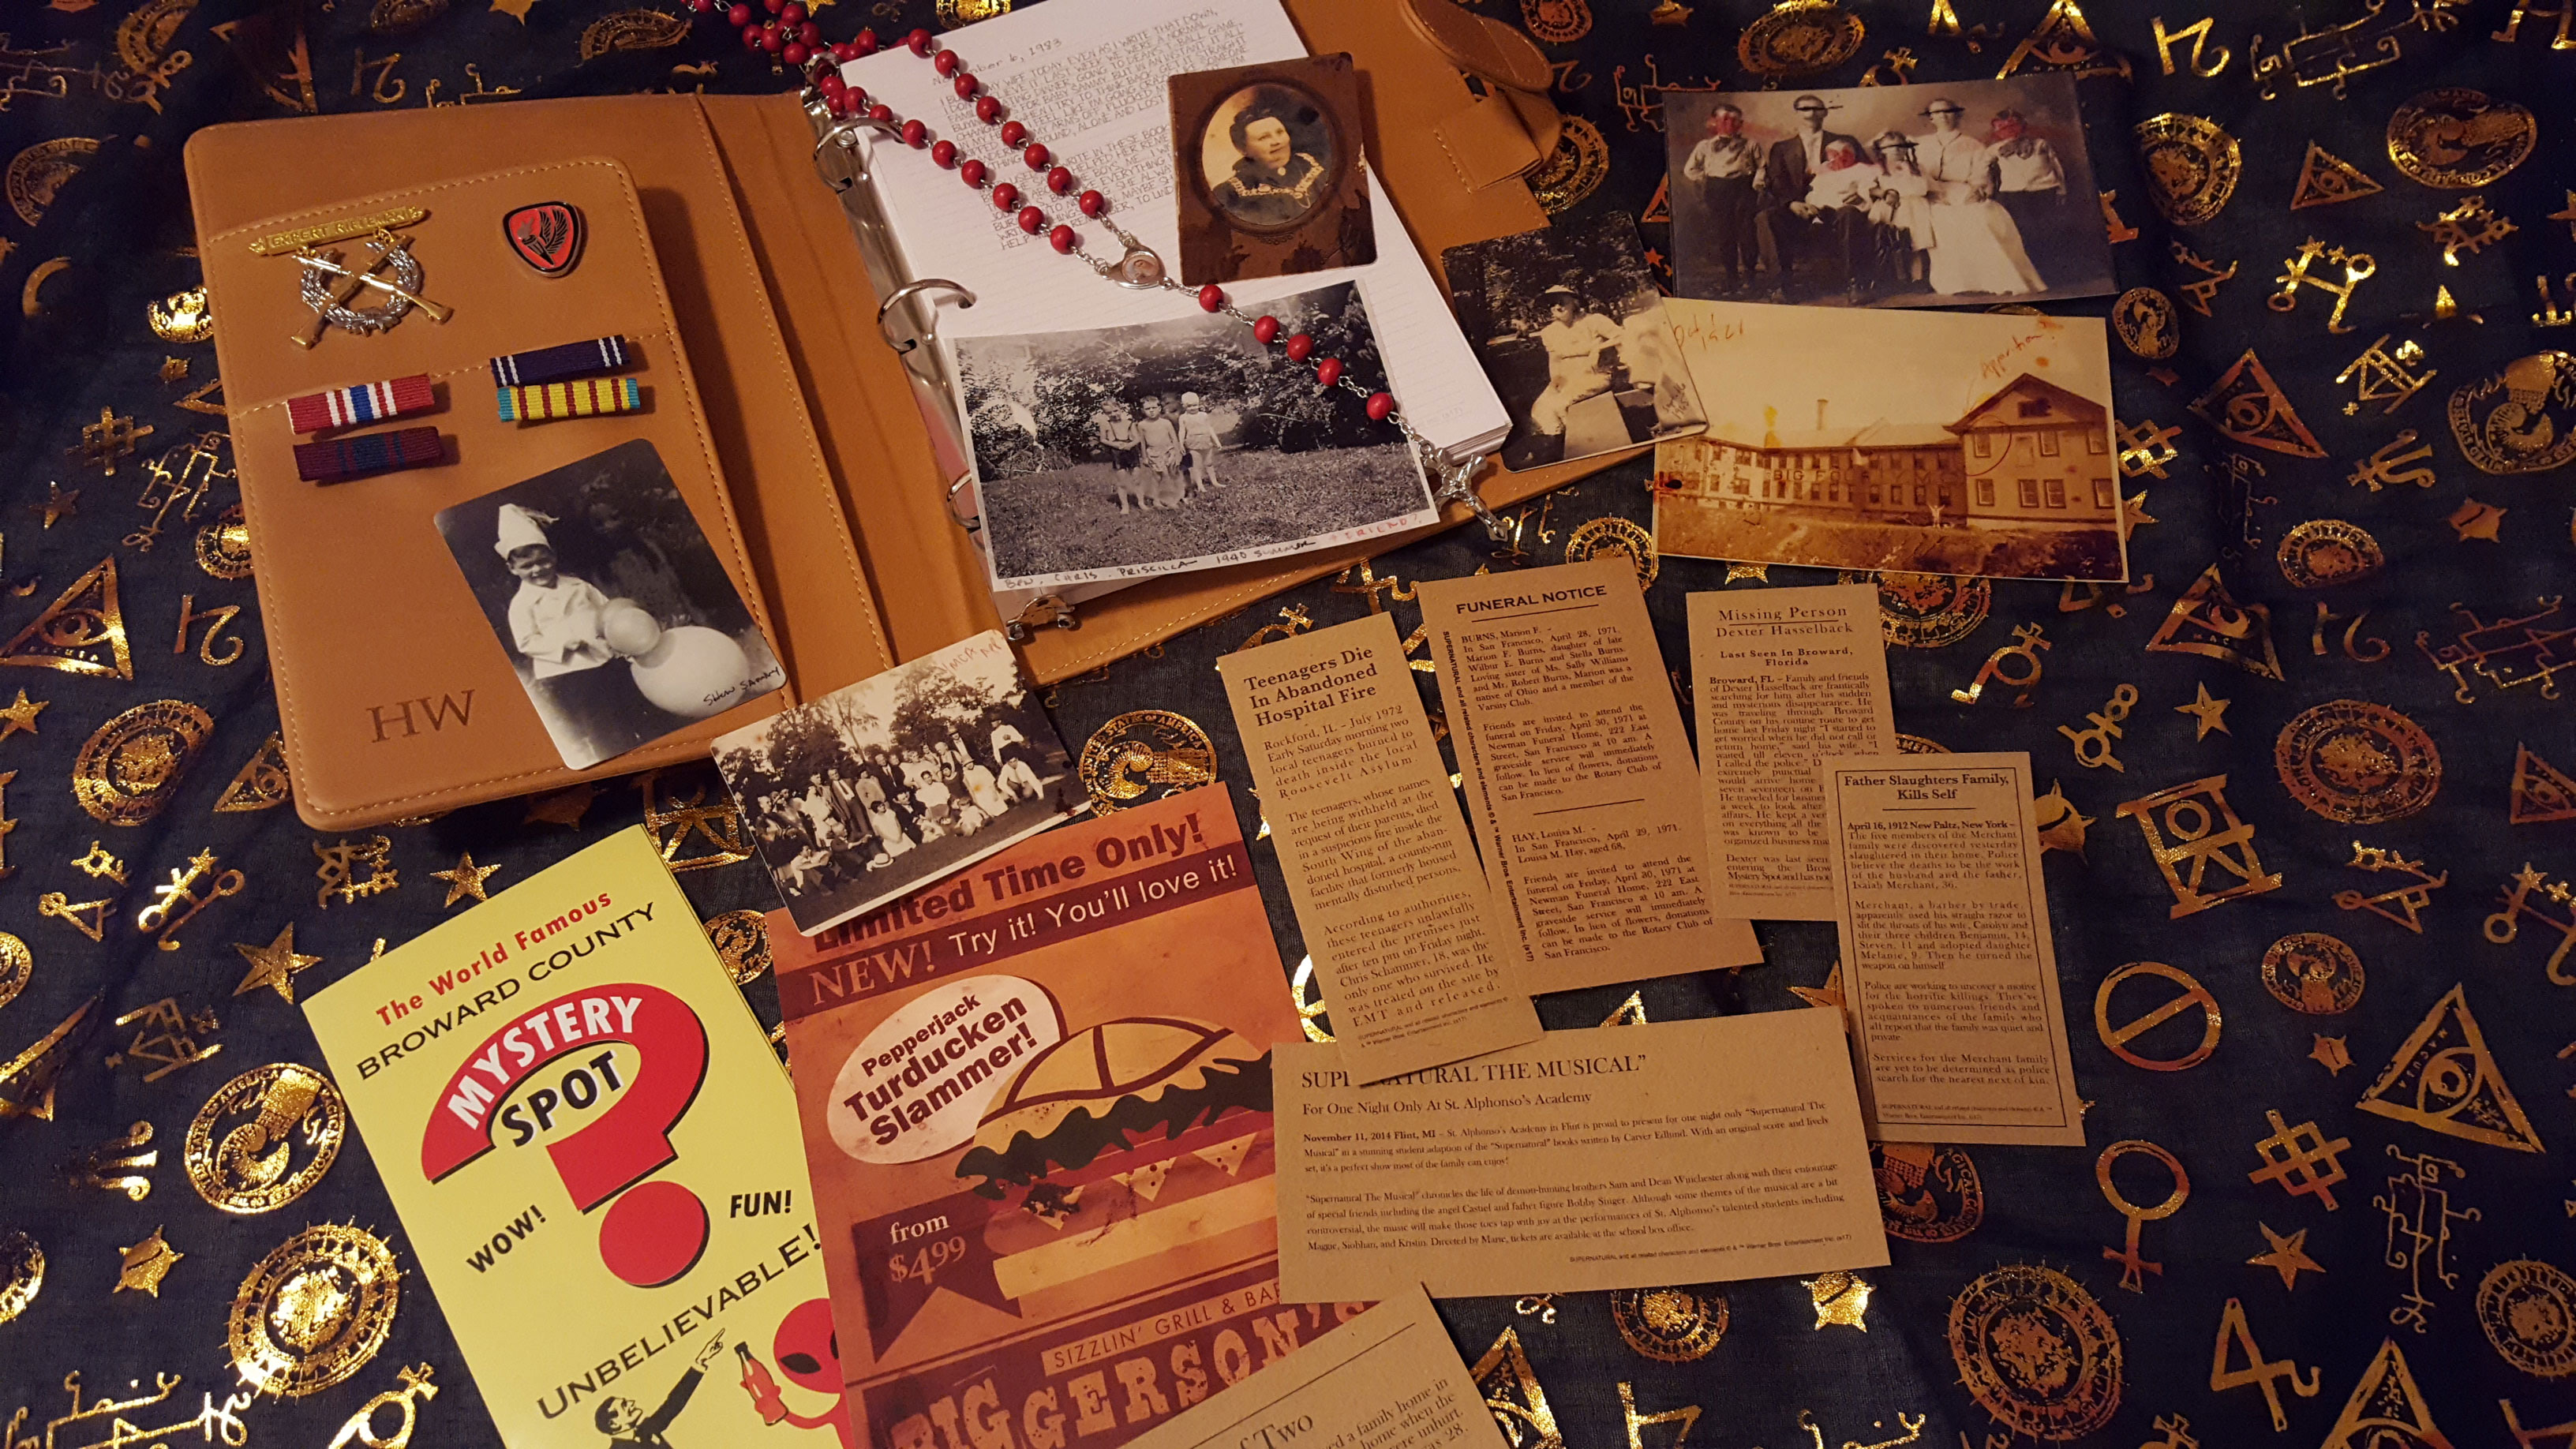 John Winchester's replica hunting journal, medals, photos, newspaper clippings, and rosary